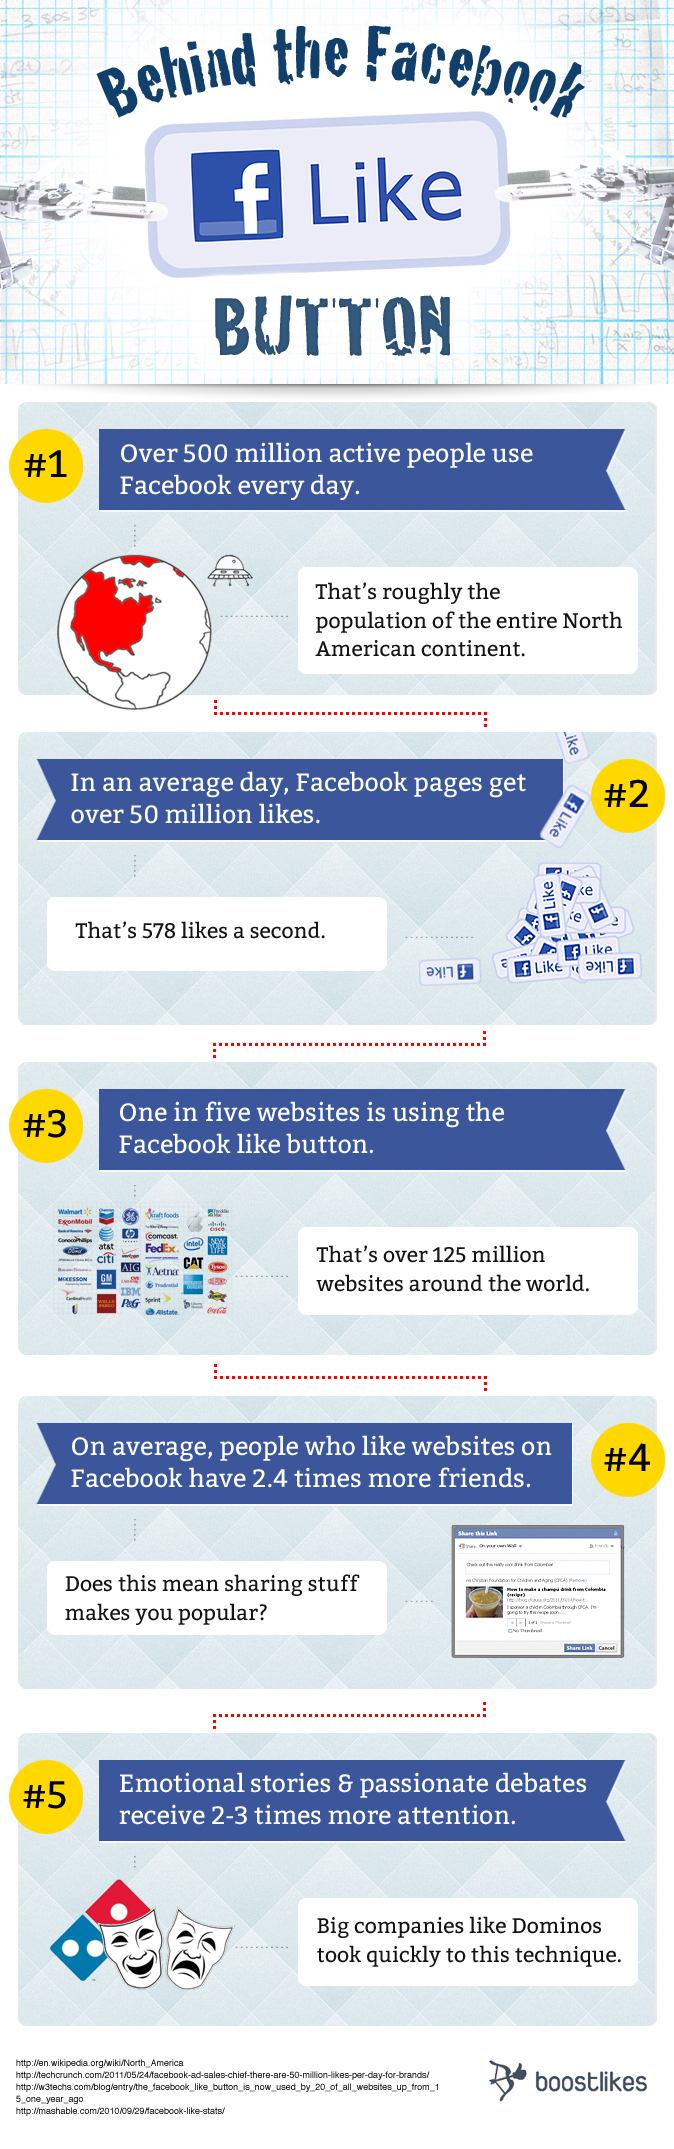 Behind the facebook like botton